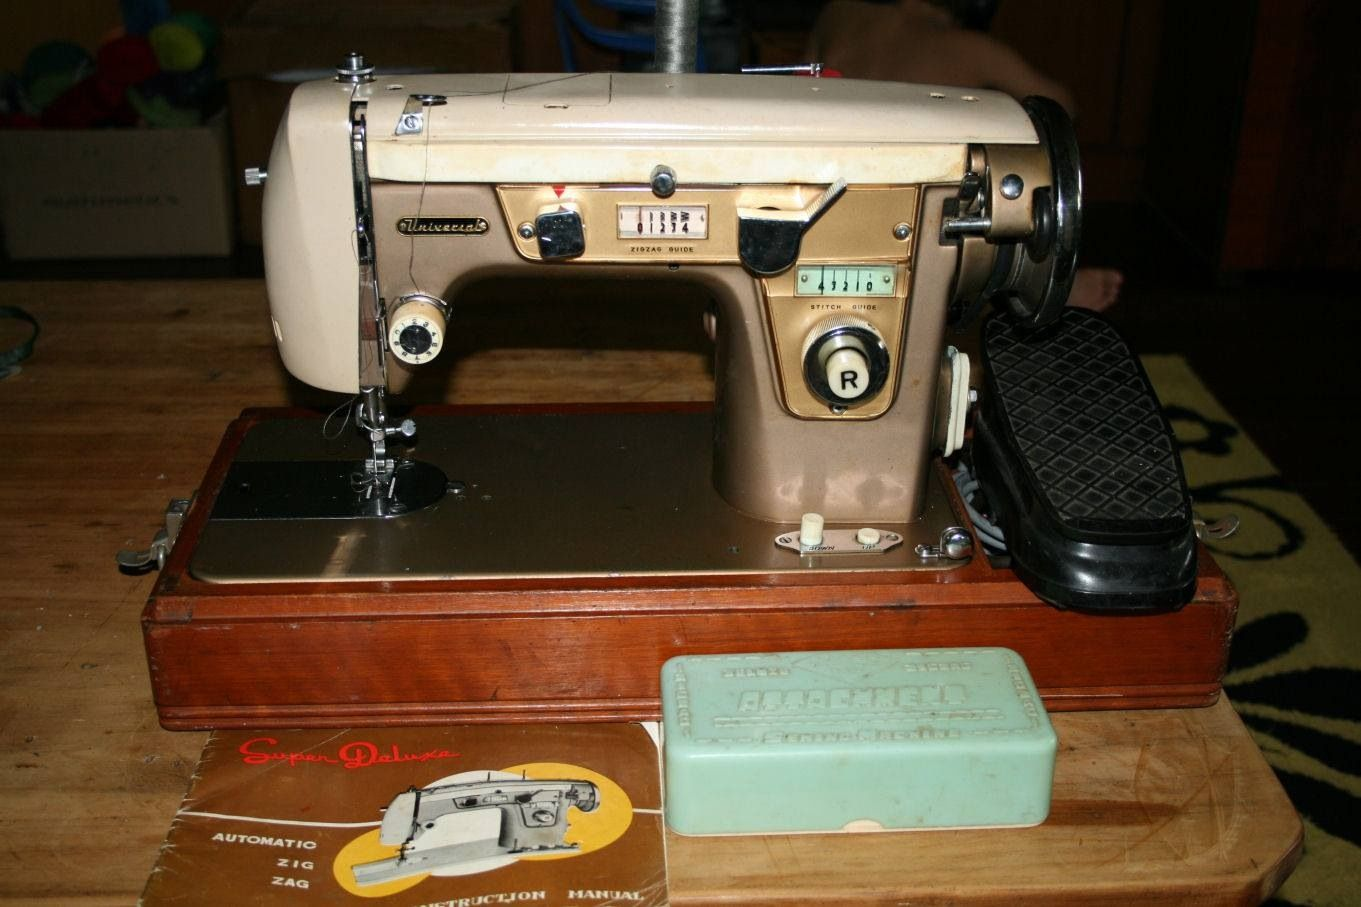 Vintage Universal Super Deluxe Sewing Machine